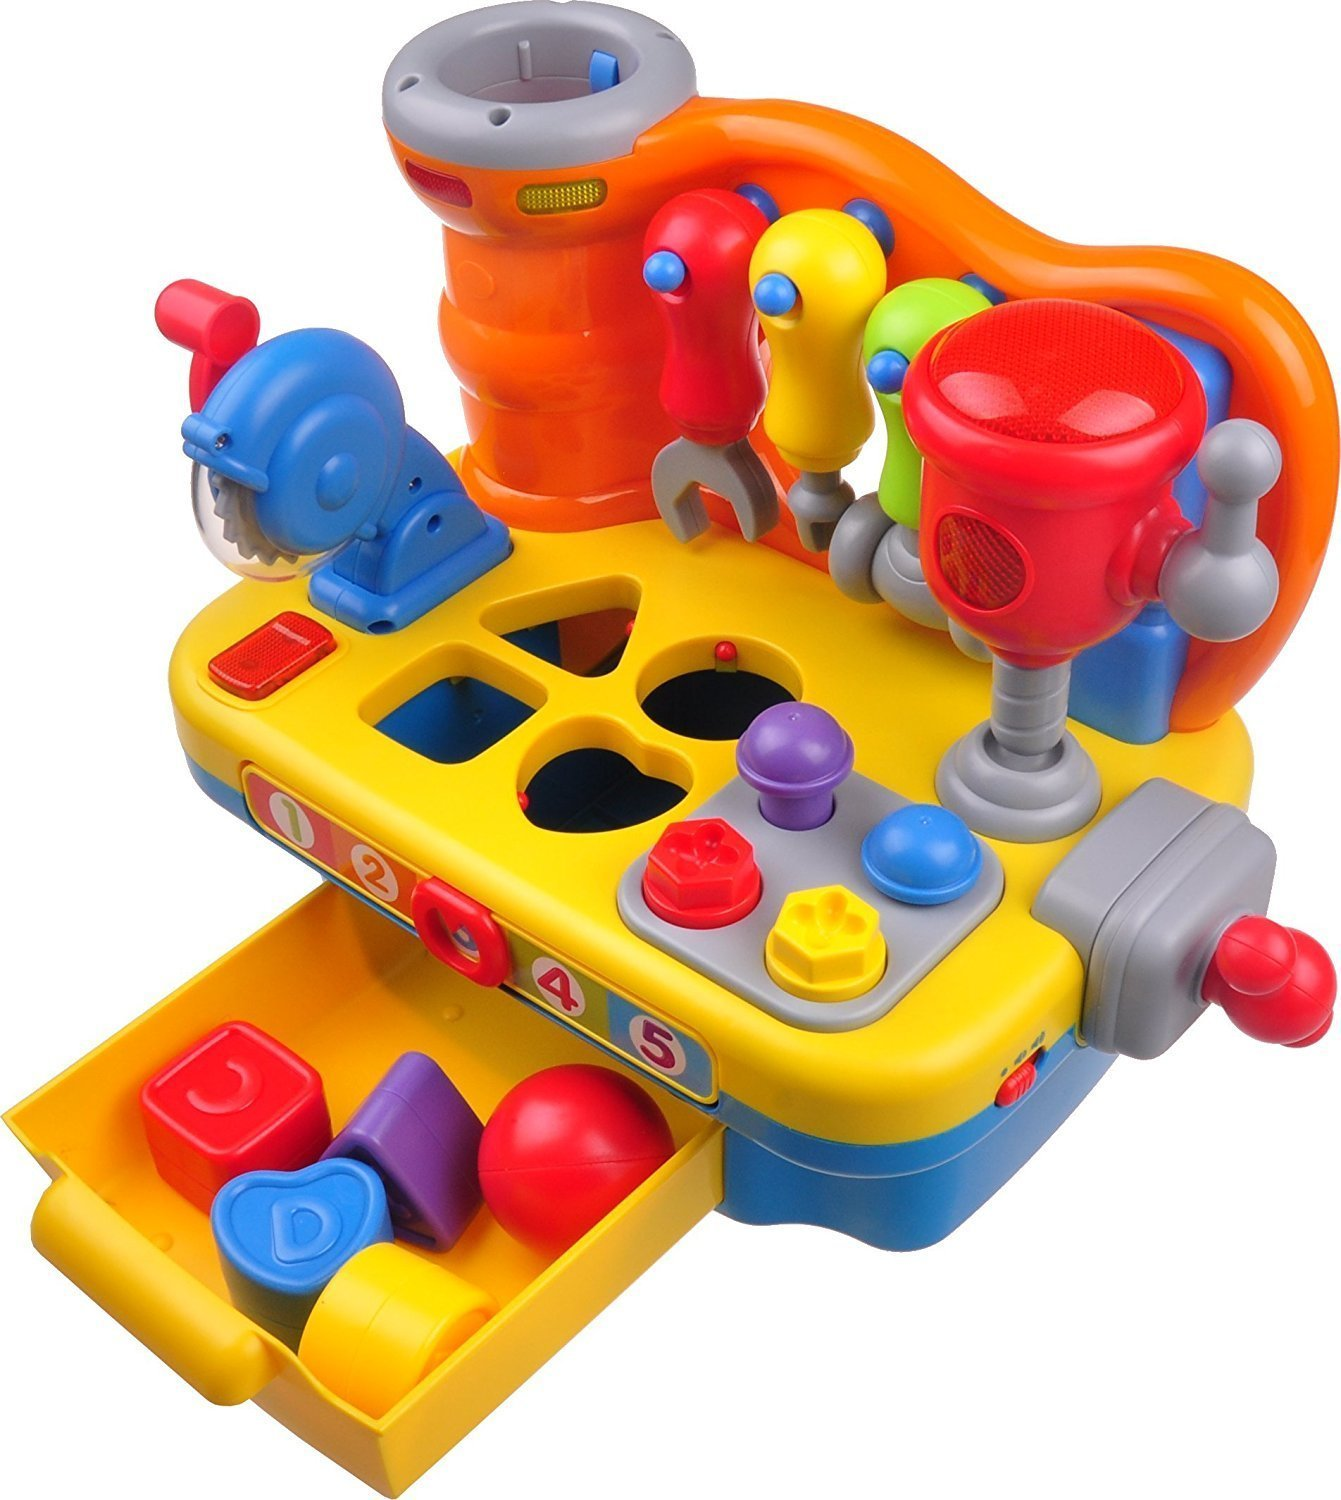 Amazon Musical Workbench Toy For Toddlers TG653 Interactive